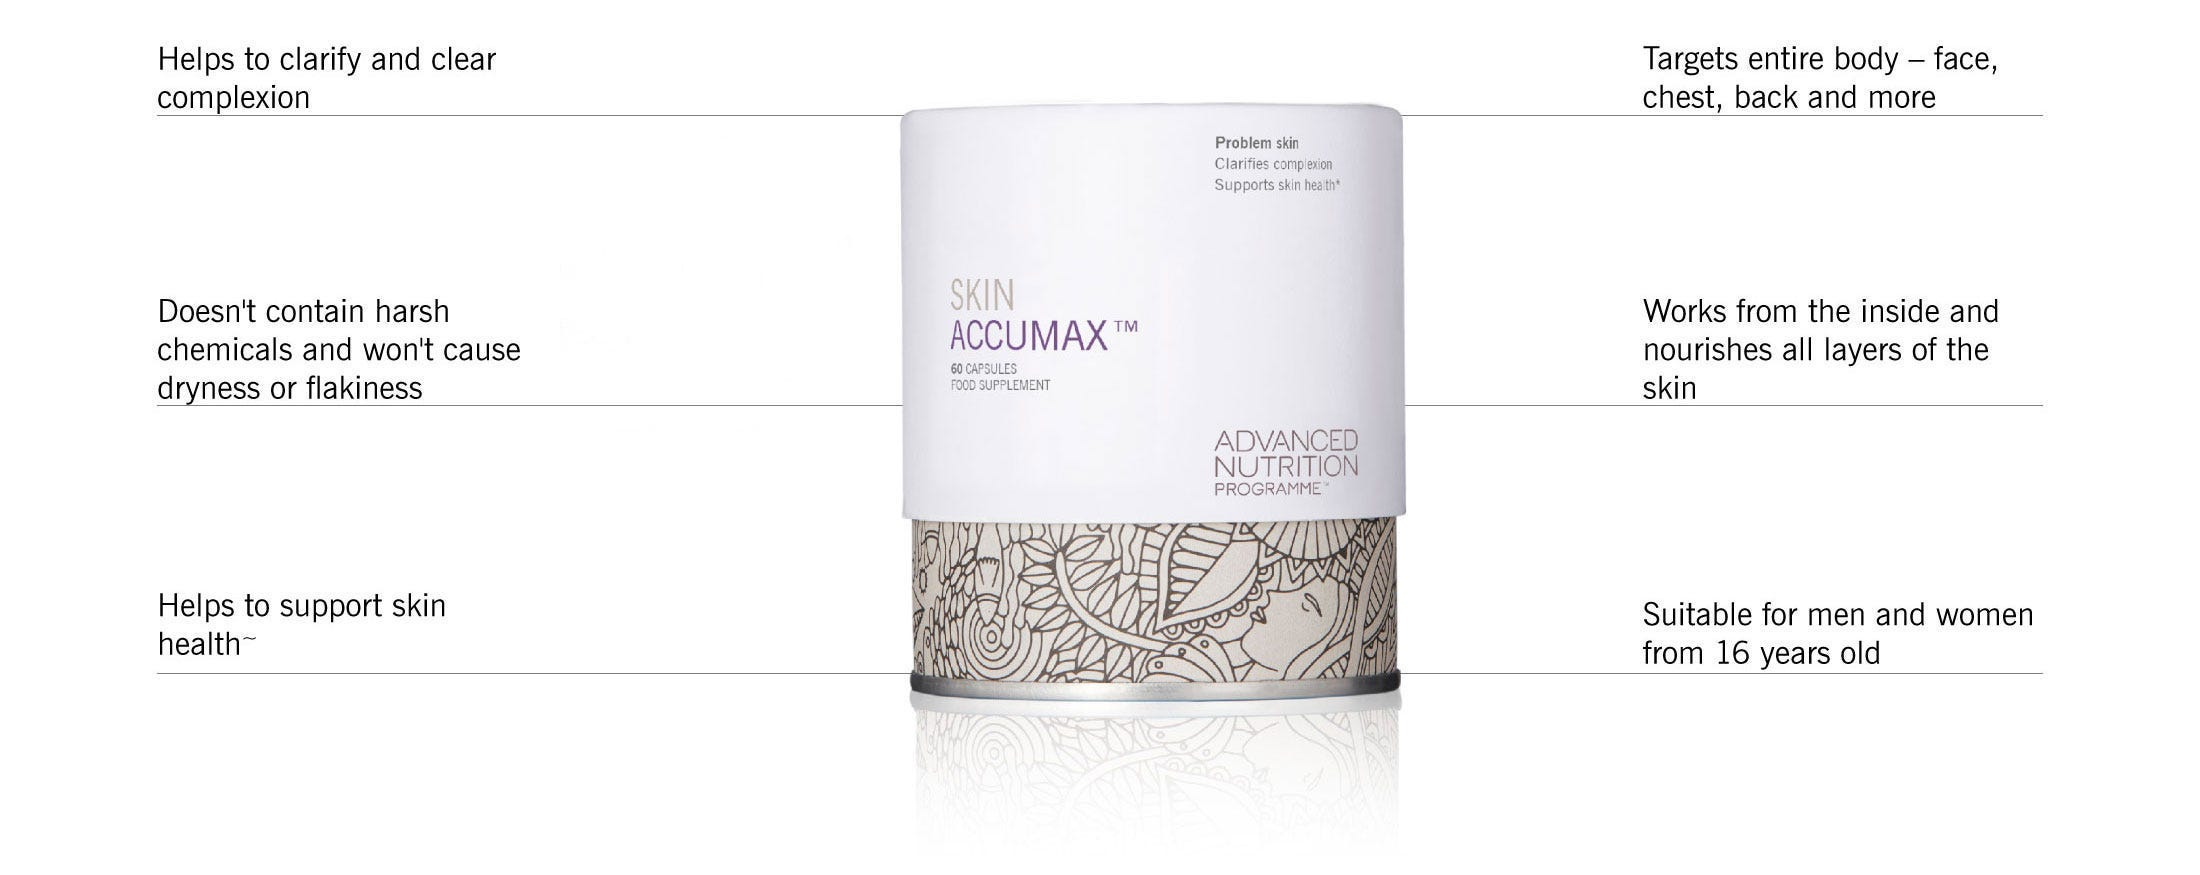 Free from harsh chemicals, this fusion of acclaimed ingredients works to feed every cell in the body to help support all areas of the skin including face, chest, back and shoulders without drying out the skin.